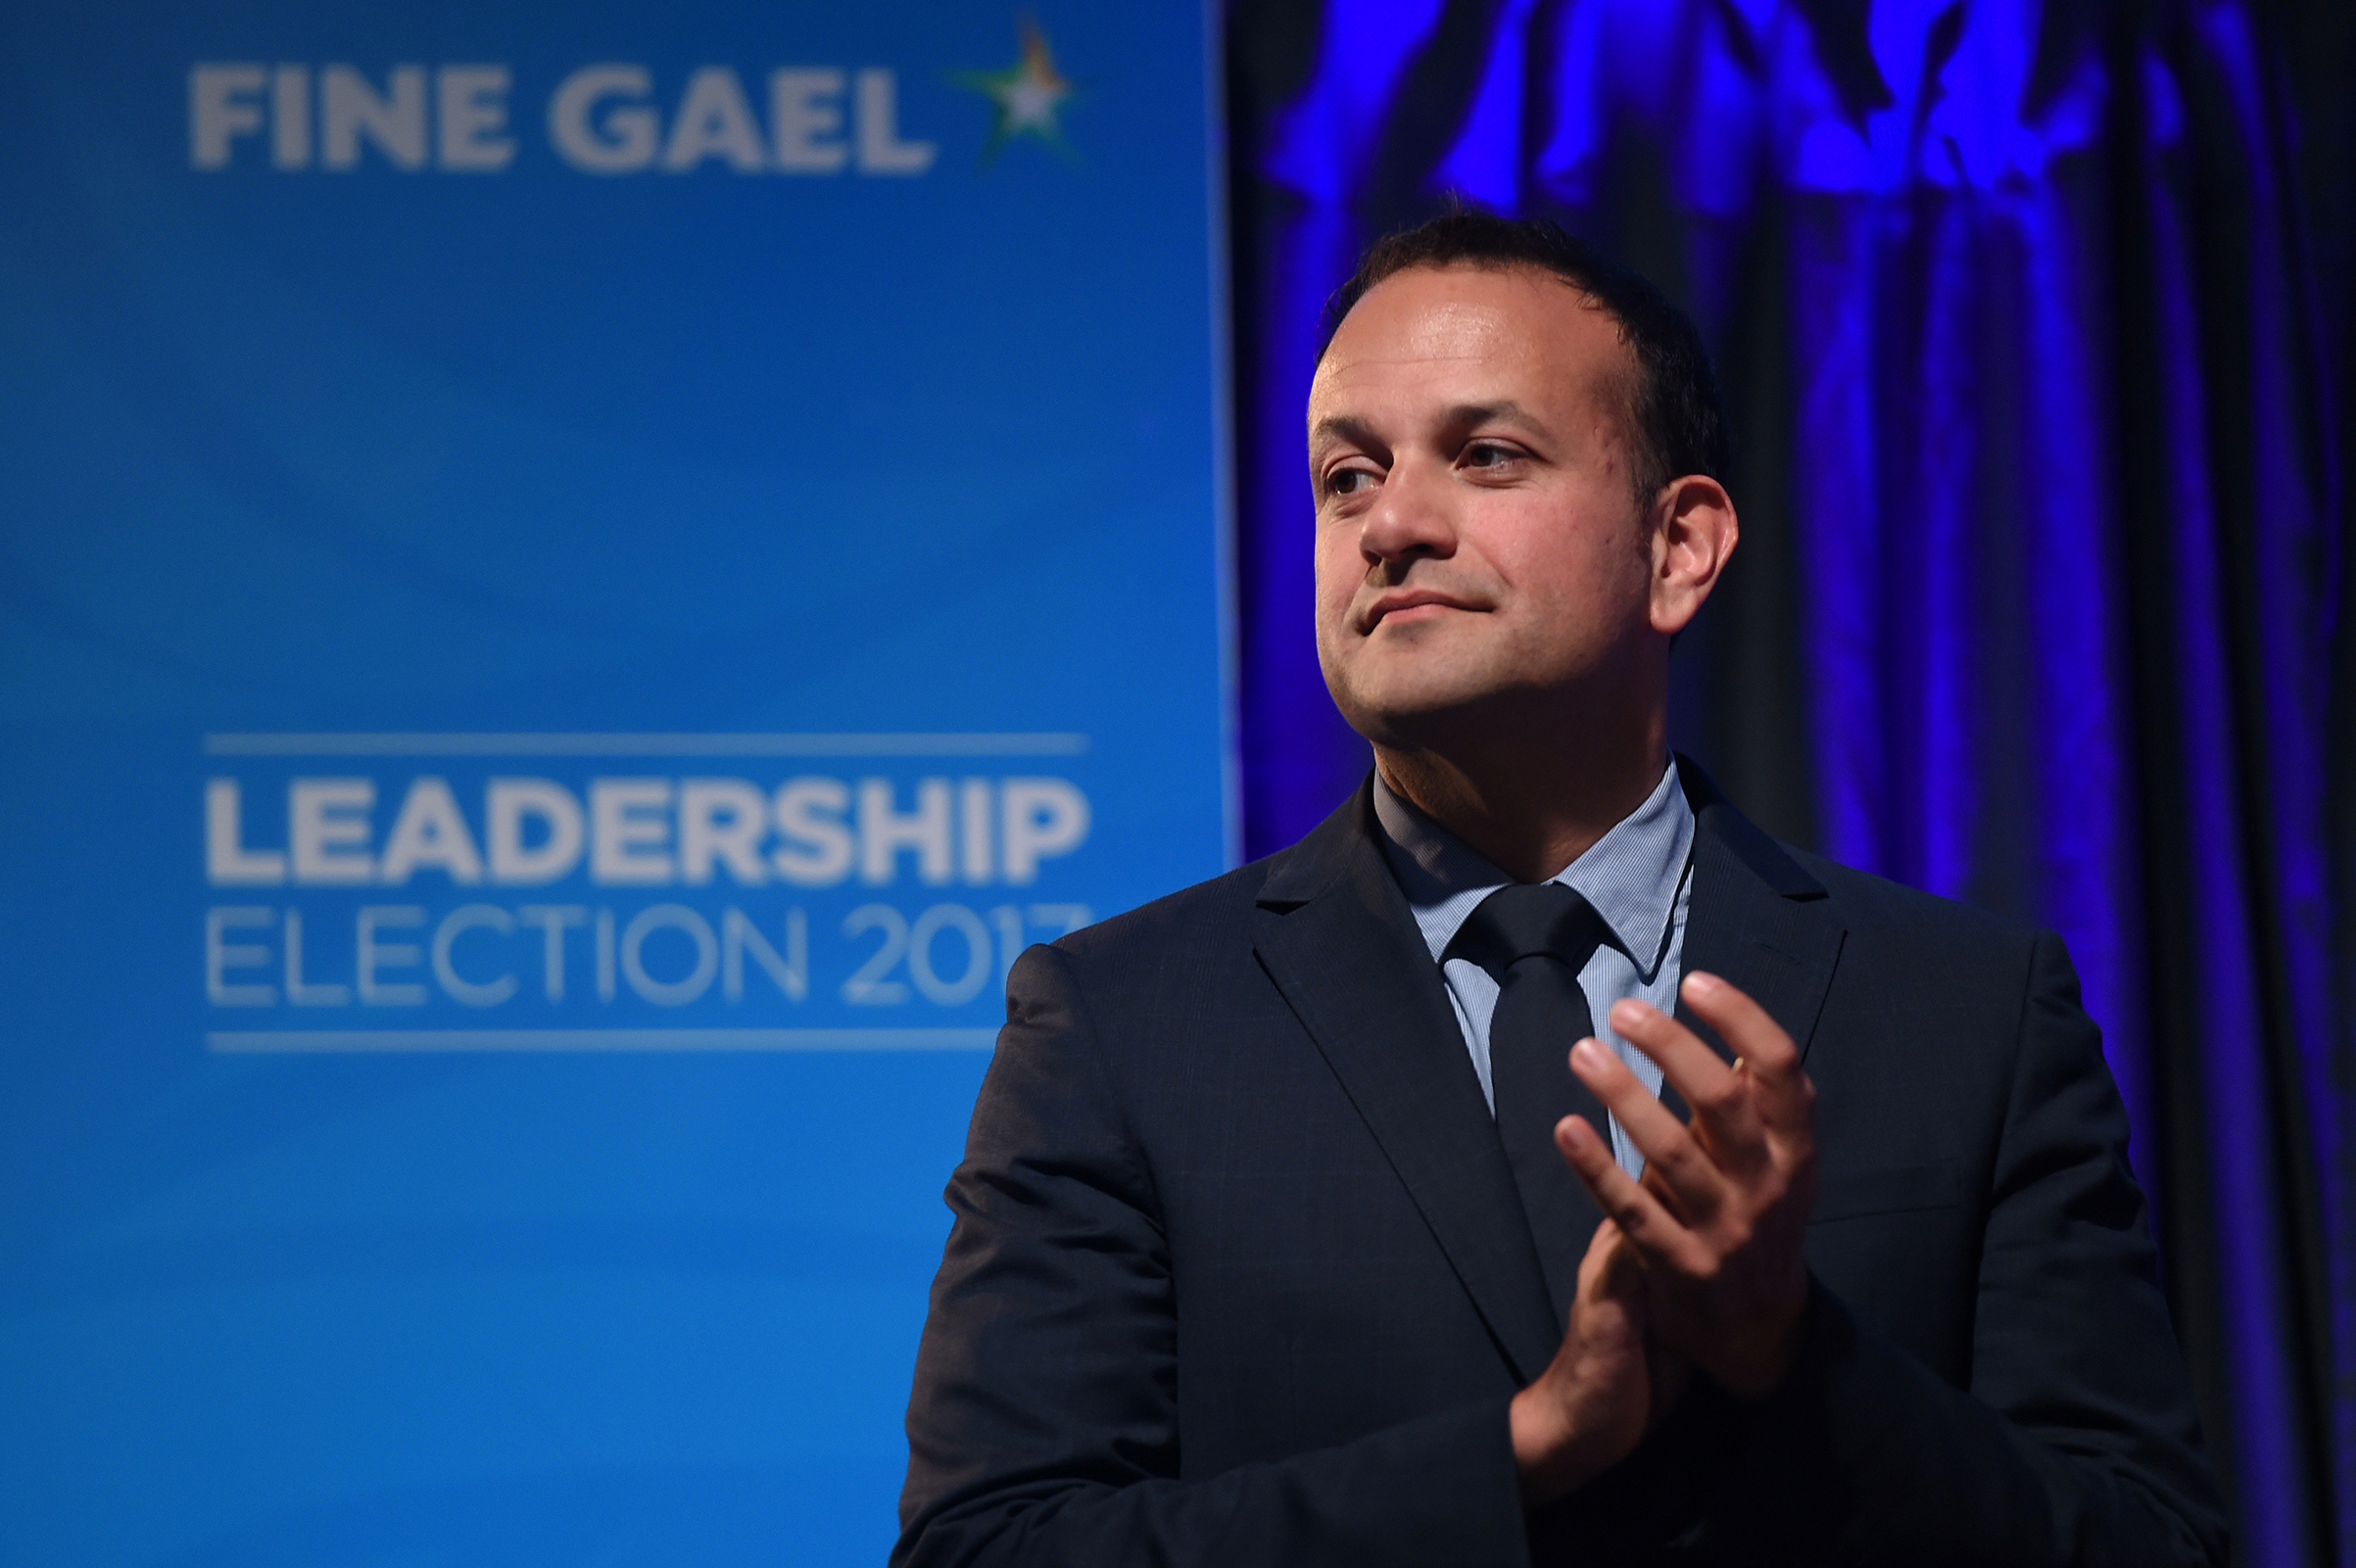 Varadkar is set to become Ireland's youngest ever leader